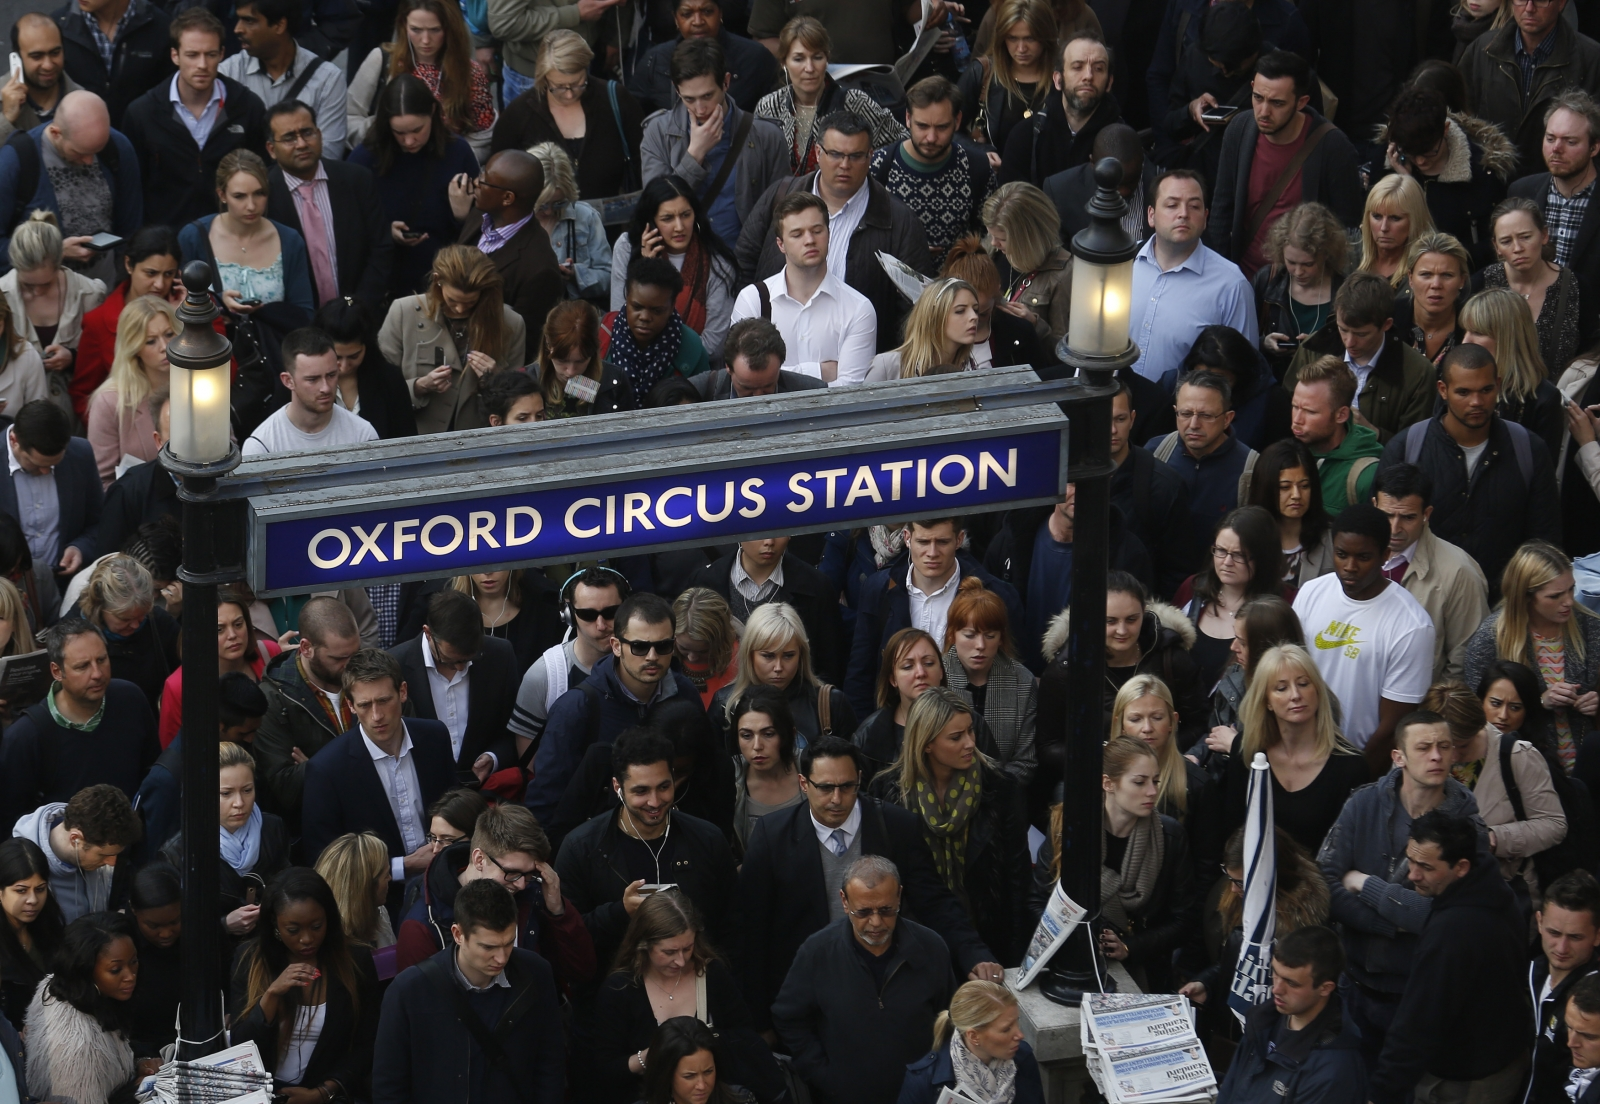 Commuters at Oxford Circus station